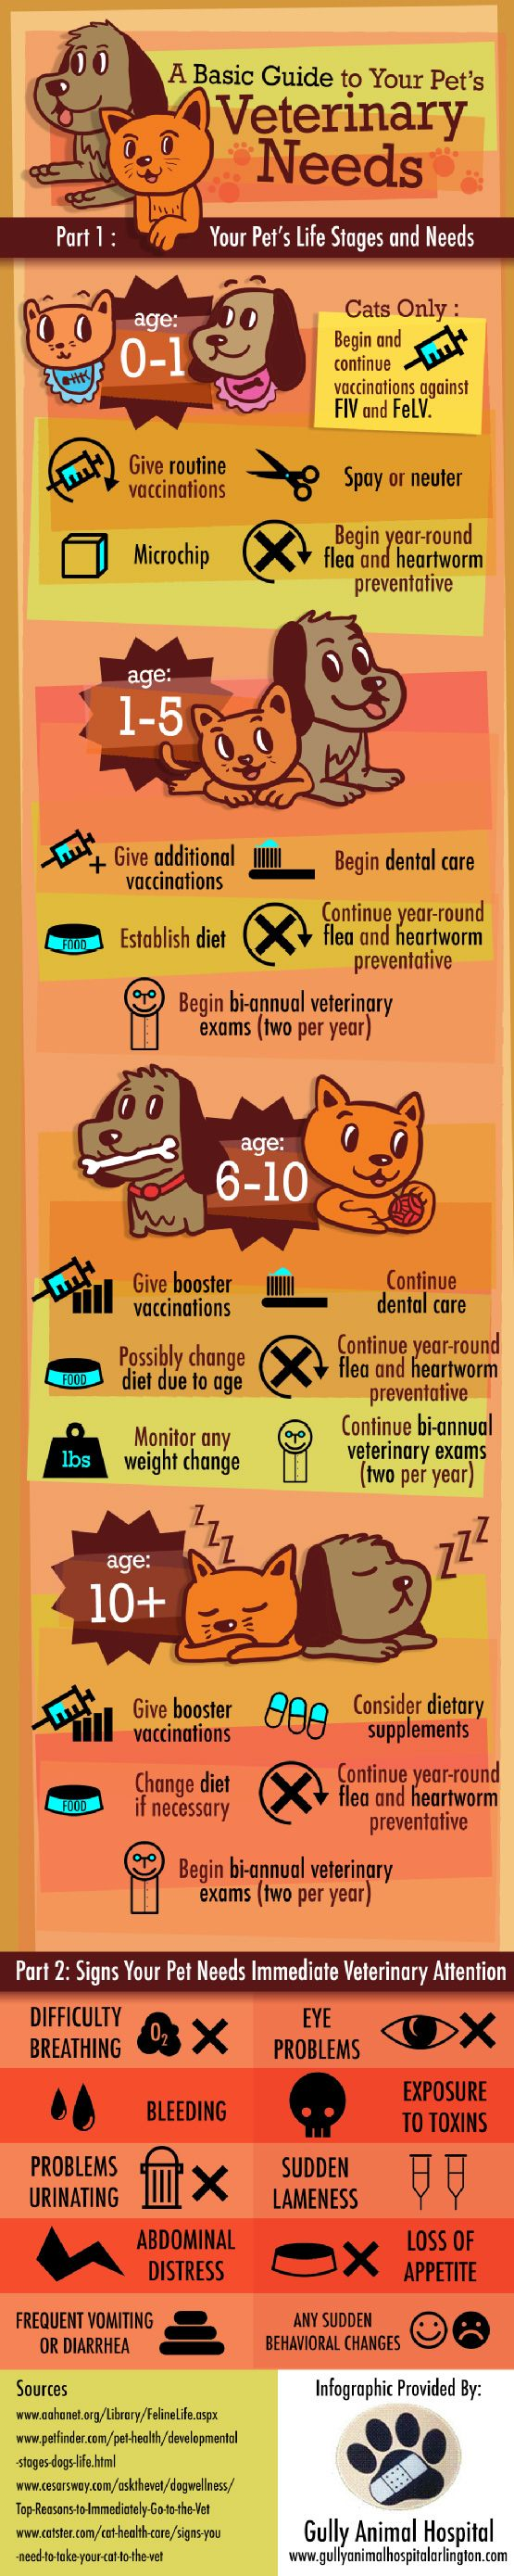 Pet Care Infographic. It would be so great to send something like this home with everyone. We could make our own infographic from scratch with Jess's picks for advice - warm weather do's  don'ts, dental, vaccines, etc.